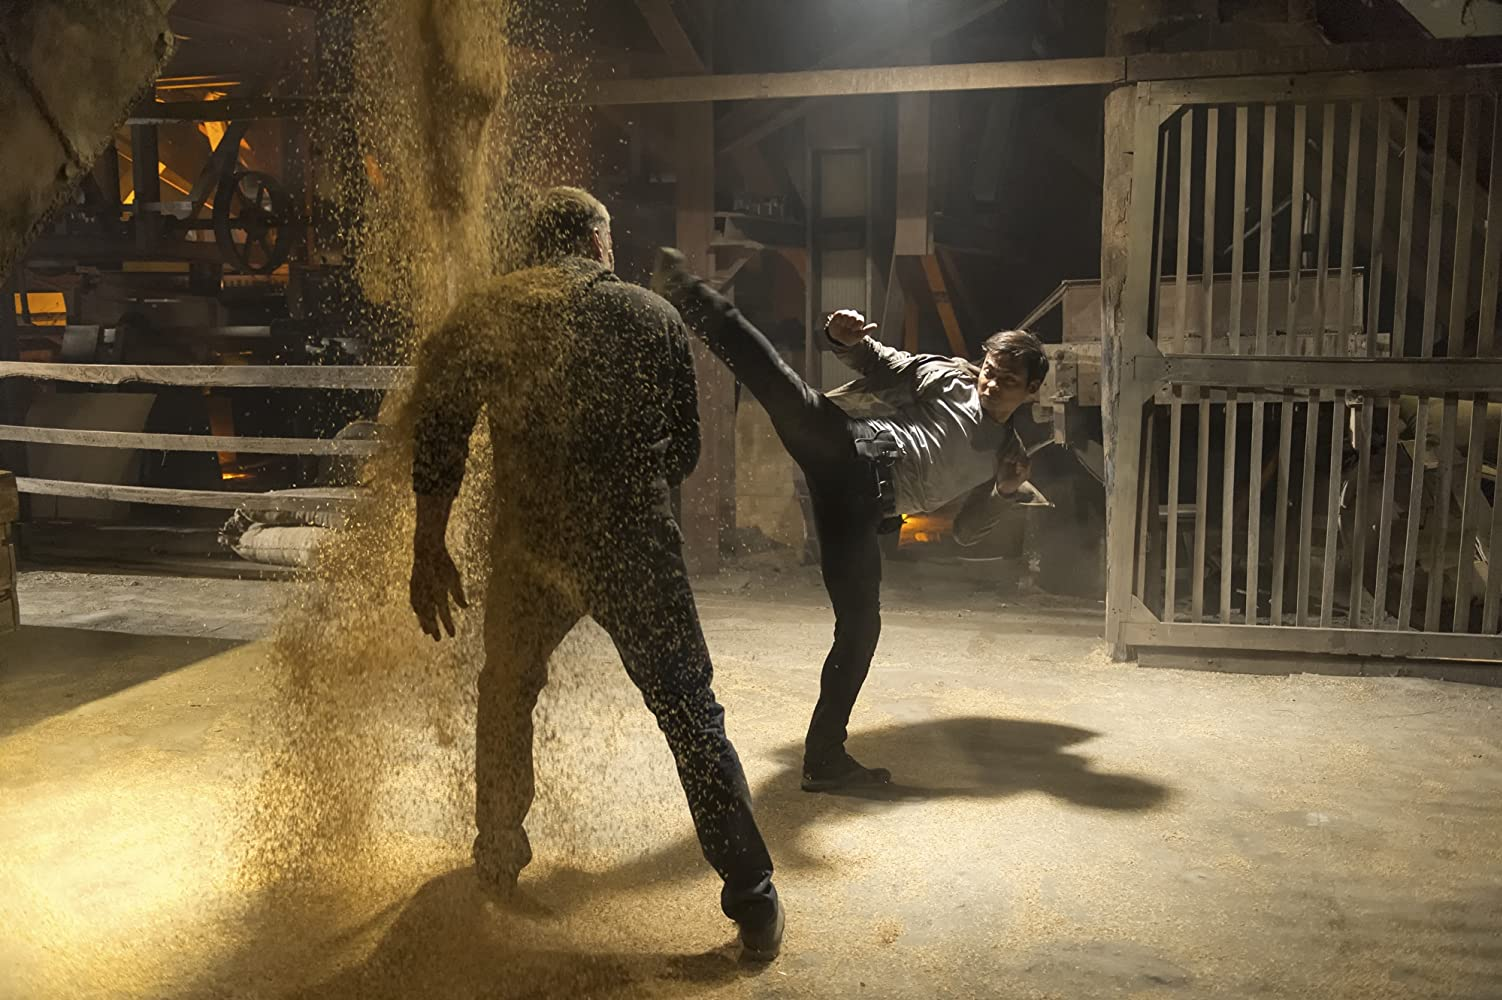 Dolph Lundgren and Tony Jaa in Skin Trade (2014)